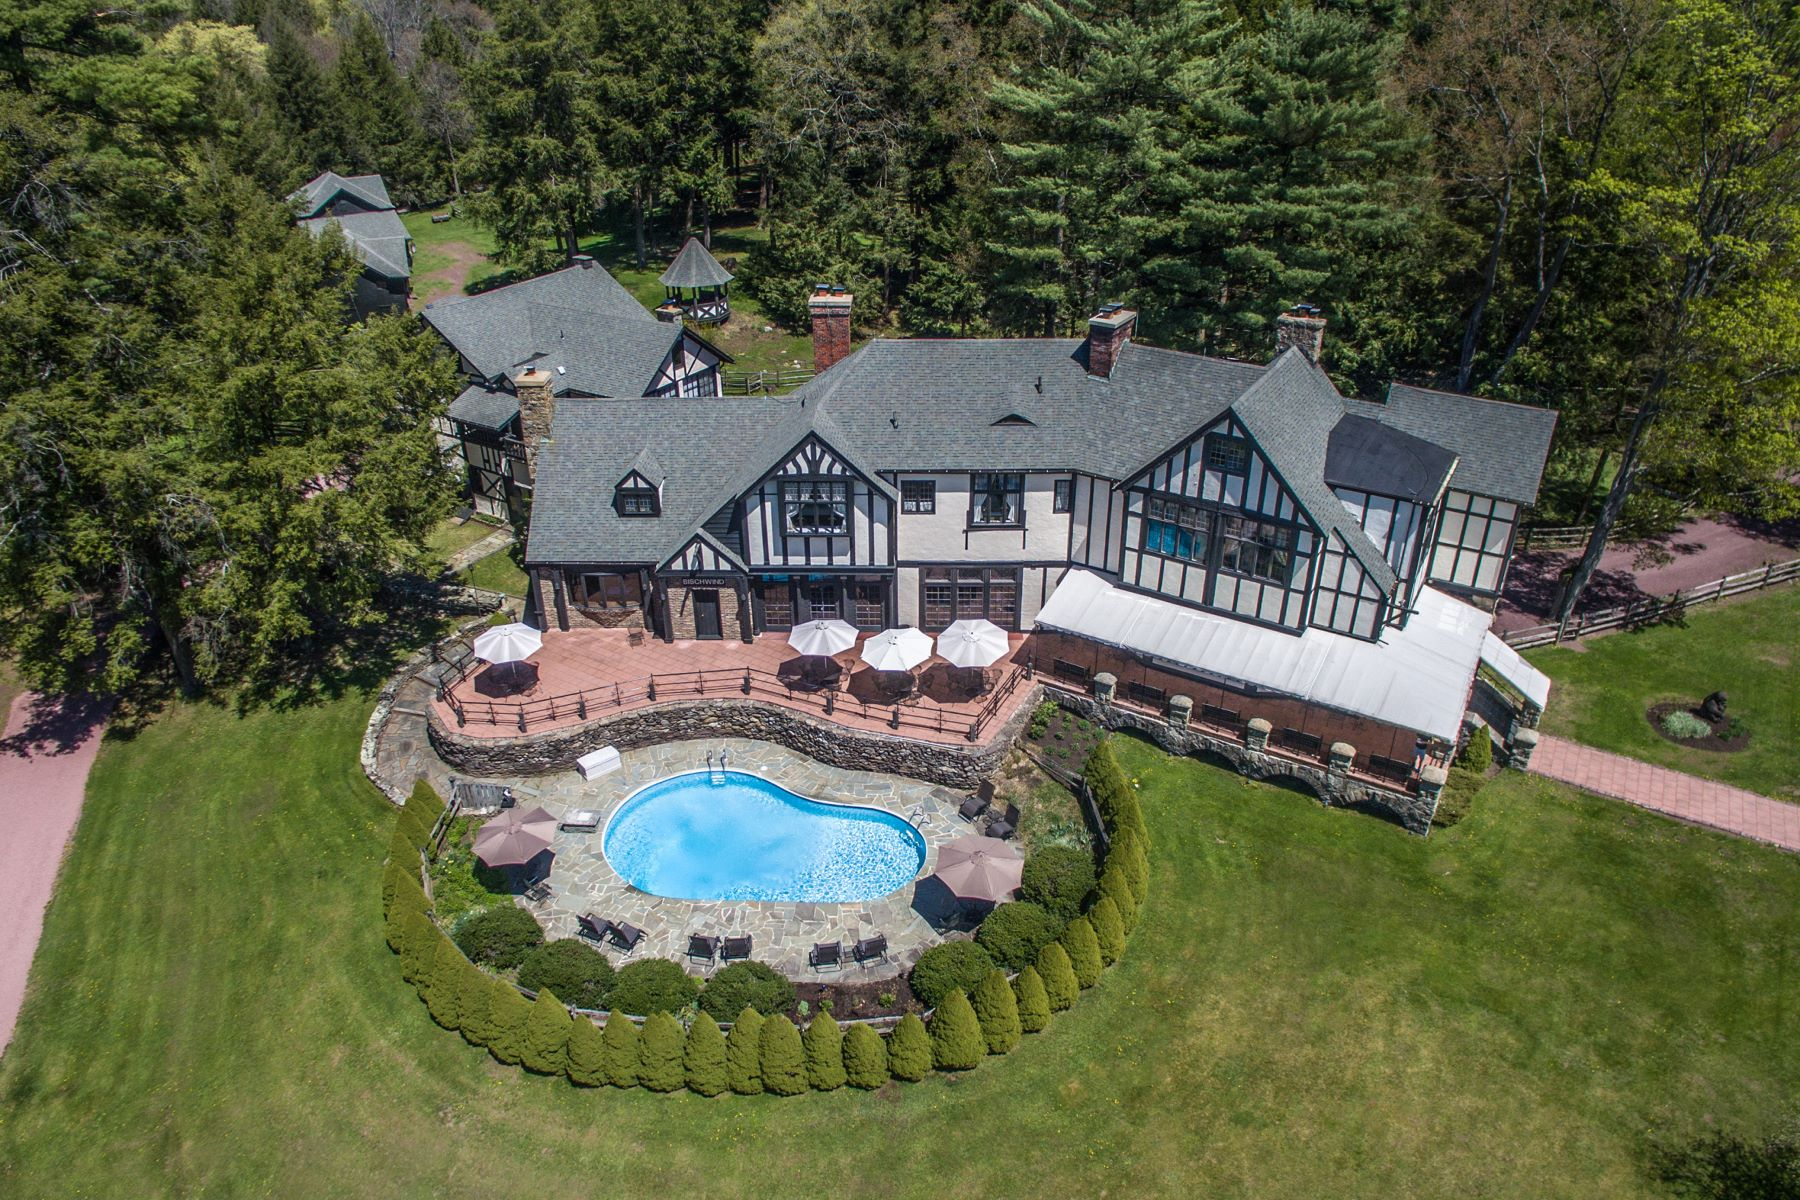 Single Family Homes for Sale at 1 COACH RD Bear Creek, Pennsylvania 18602 United States